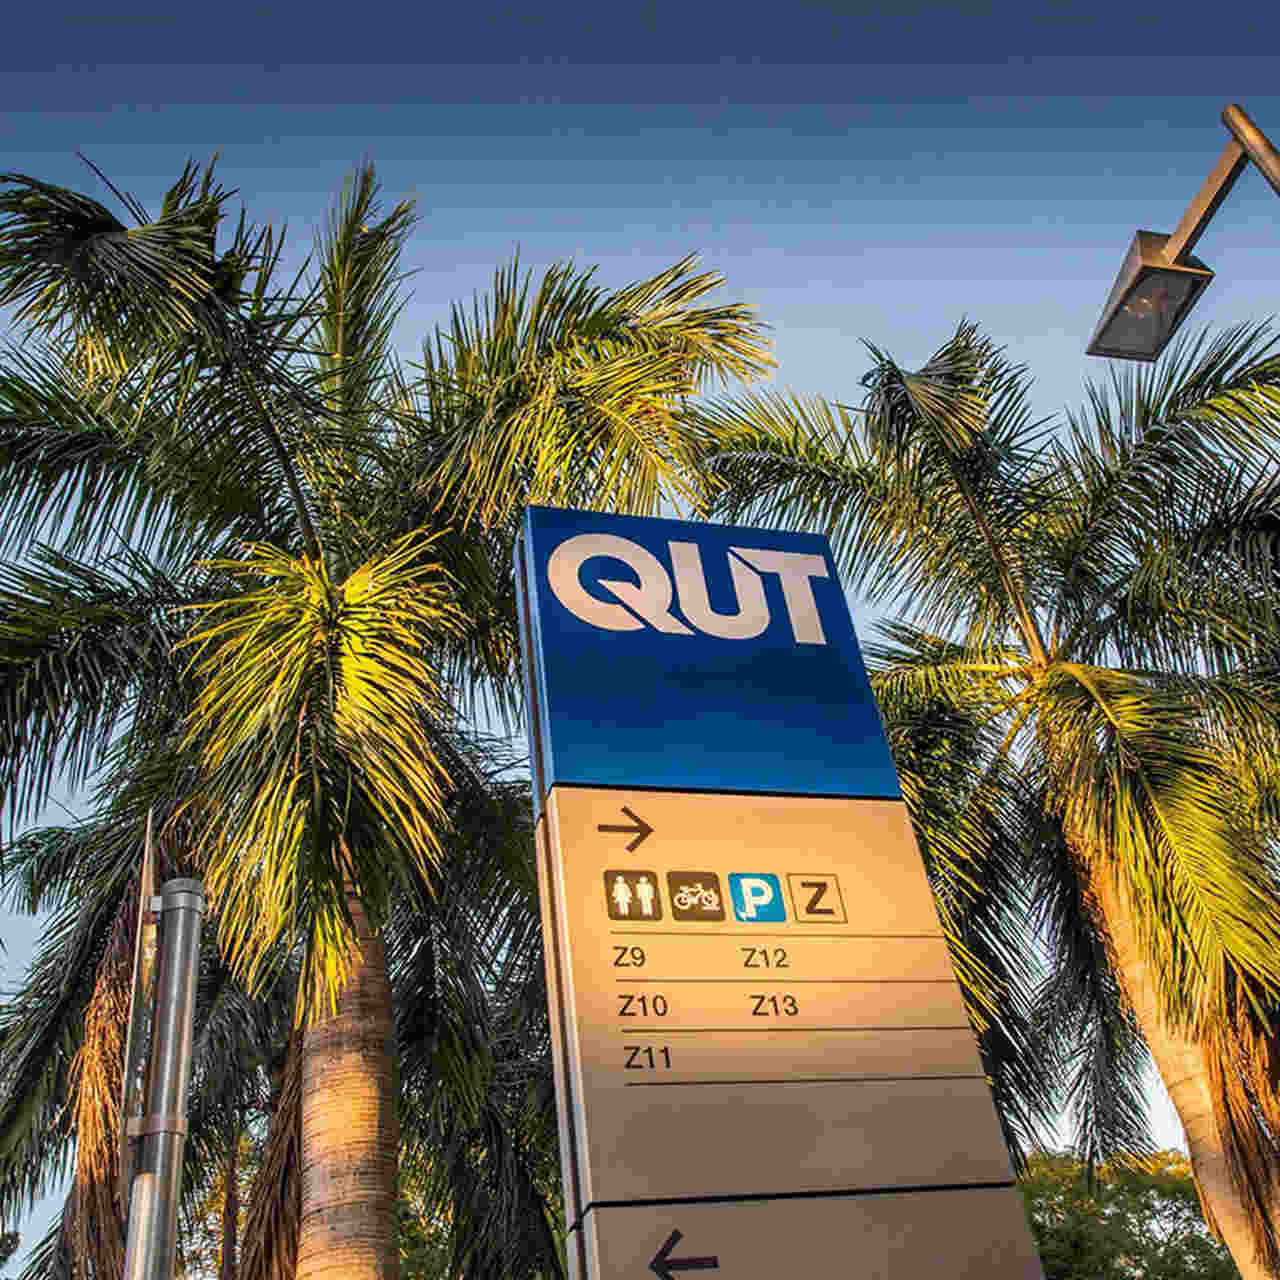 Tree, Palm tree, Sky, Arecales, Woody plant, Signage, Plant, Street sign, Sign, Vacation, Queensland University of Technology, QUT Gardens Point Campus, The University of Queensland